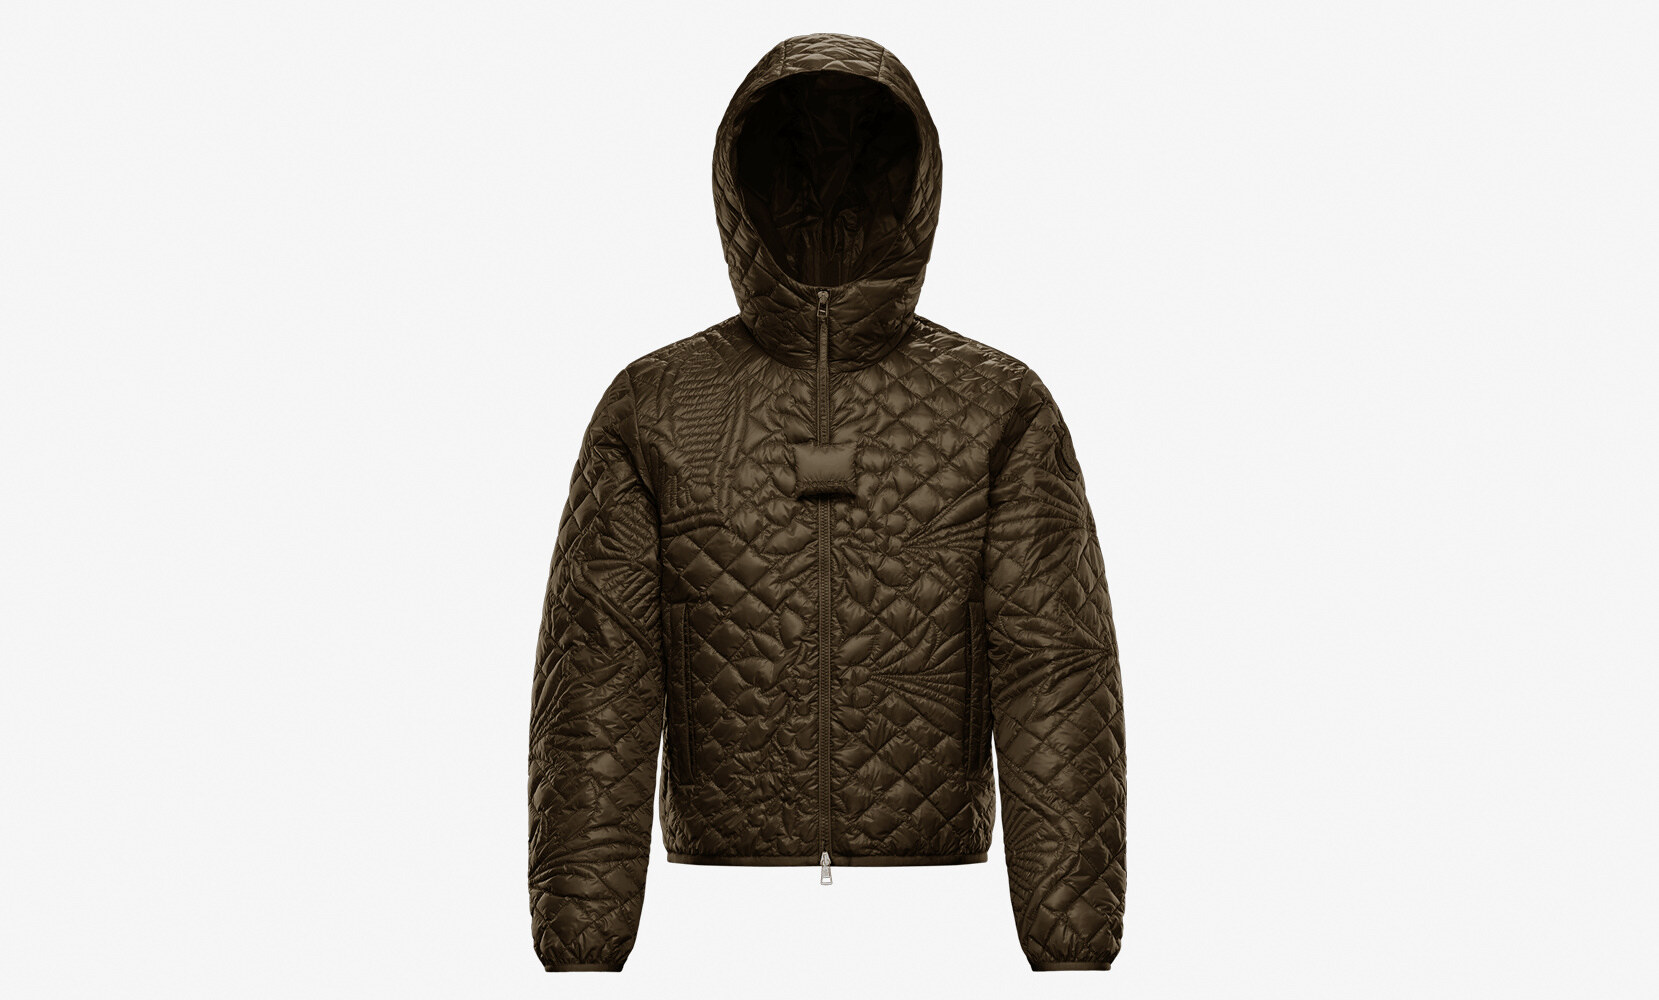 Moncler x JW Anderson capsule collection